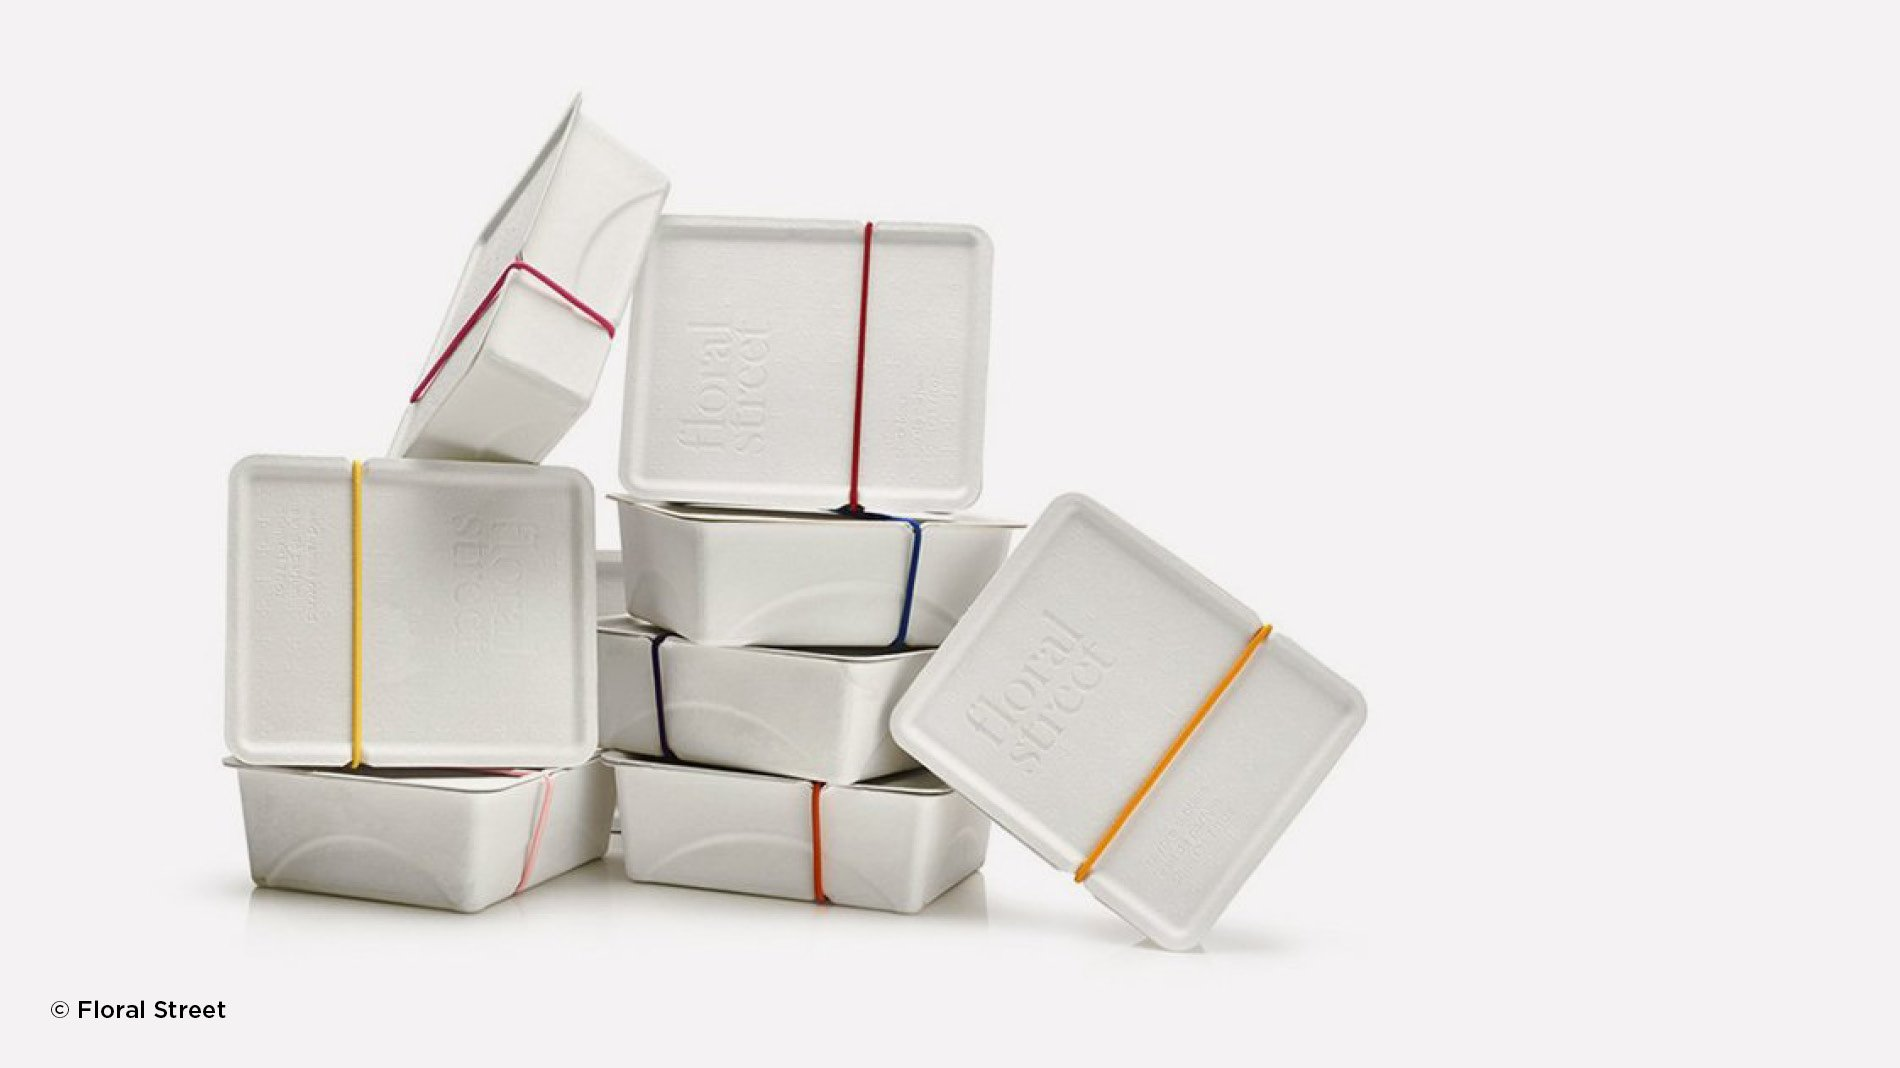 Floral Street's sustainable and biodegradable packaging